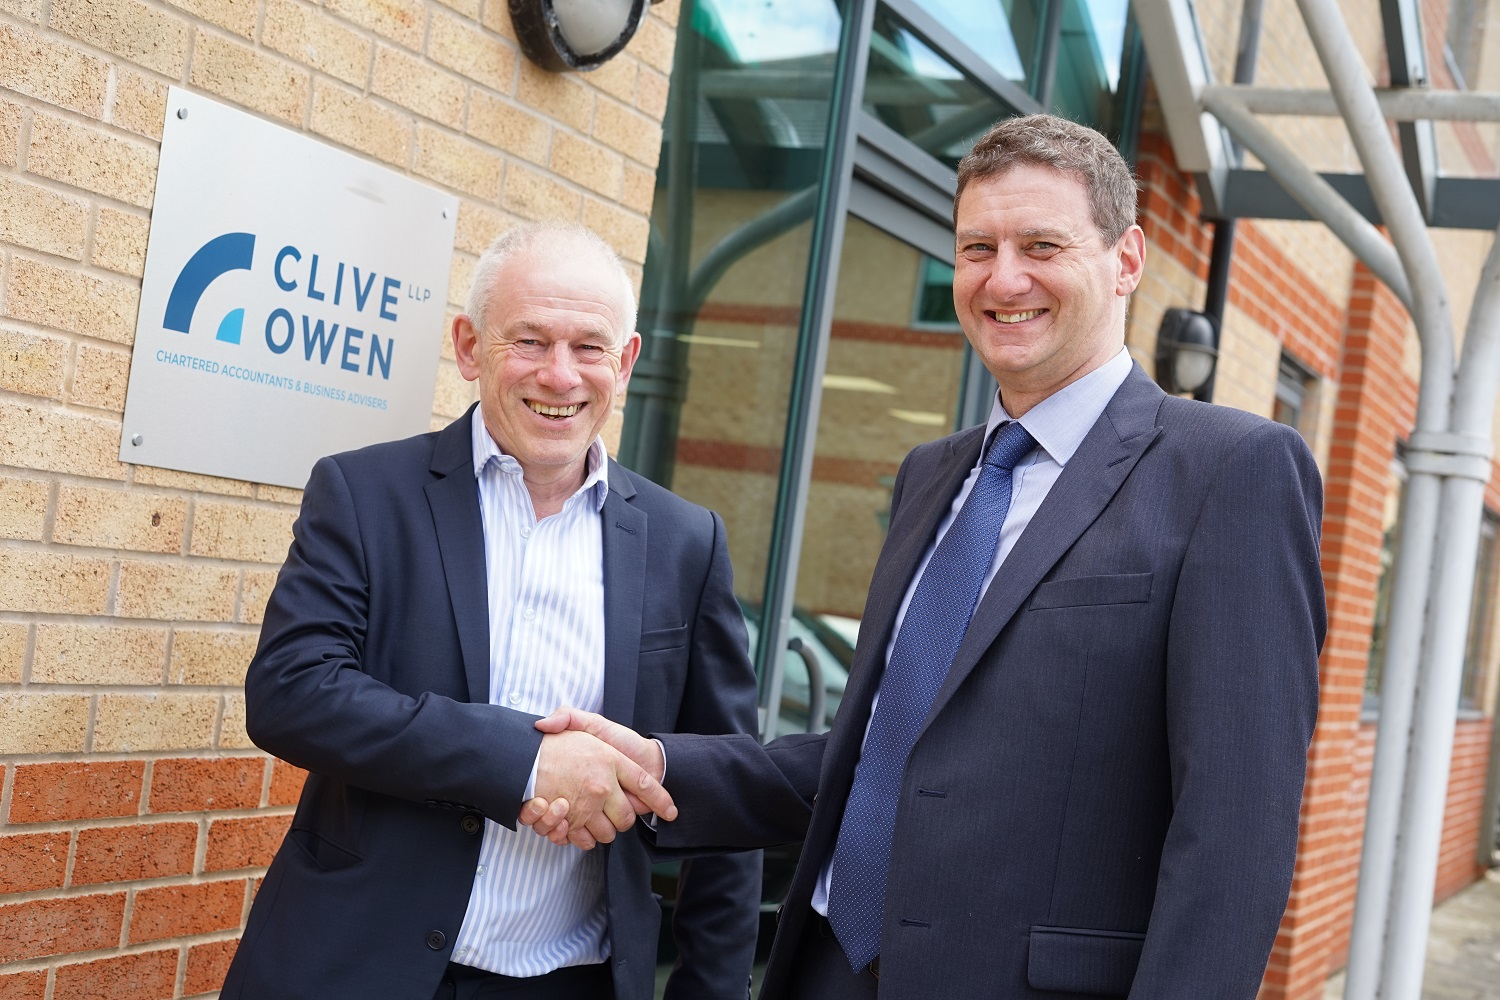 Teery Doyle (York) welcomes Rob Whitehead to Clive Owen LLP